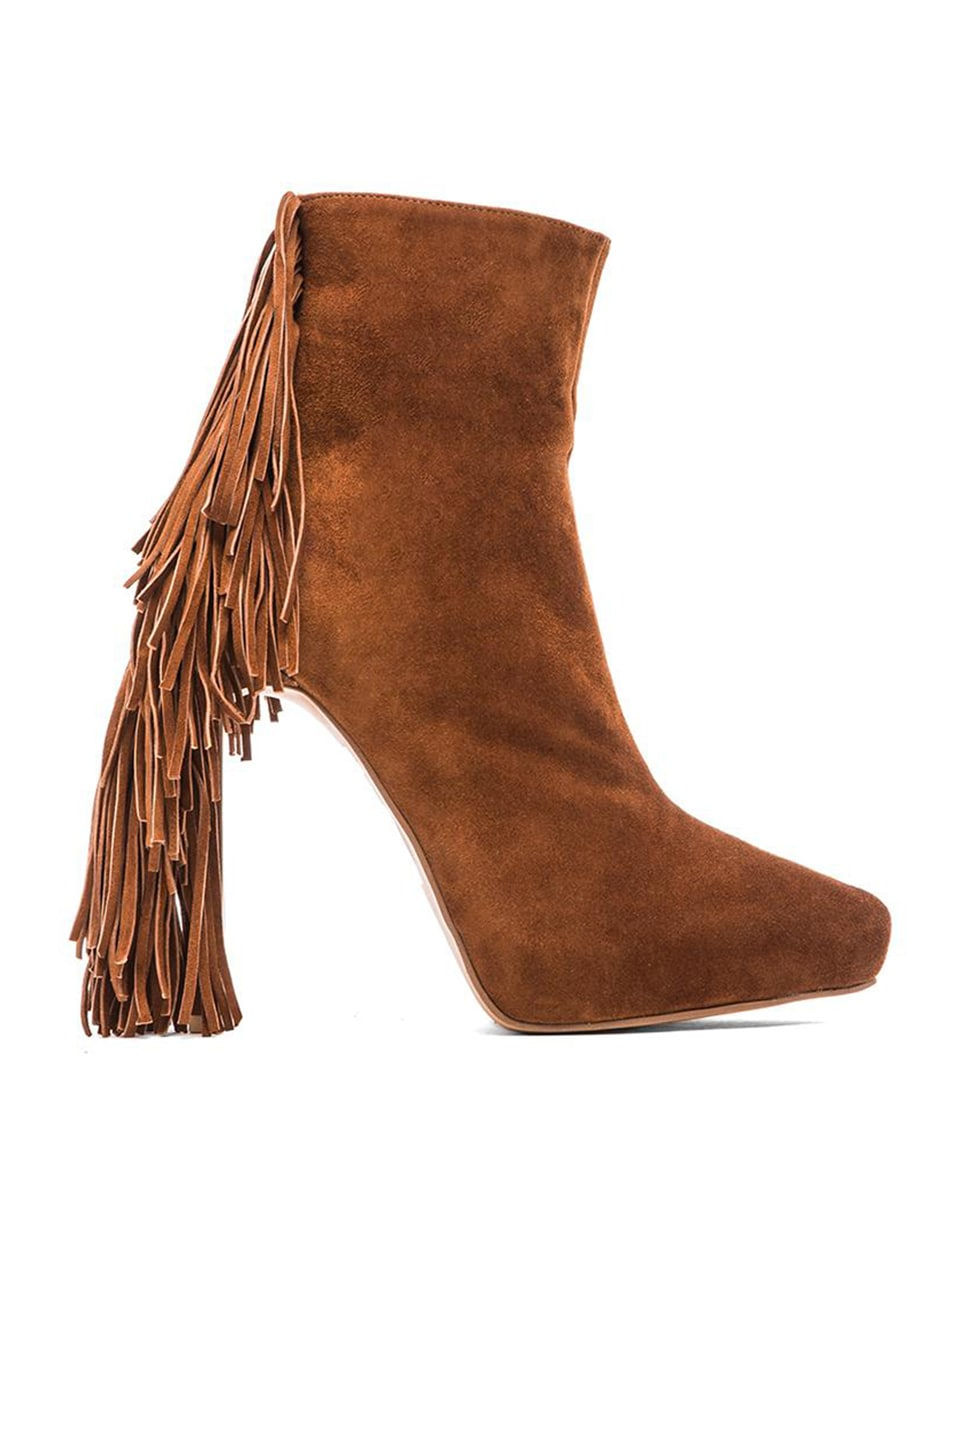 Jeffrey Campbell Sampson Fringe Heeled Bootie in Tan Suede